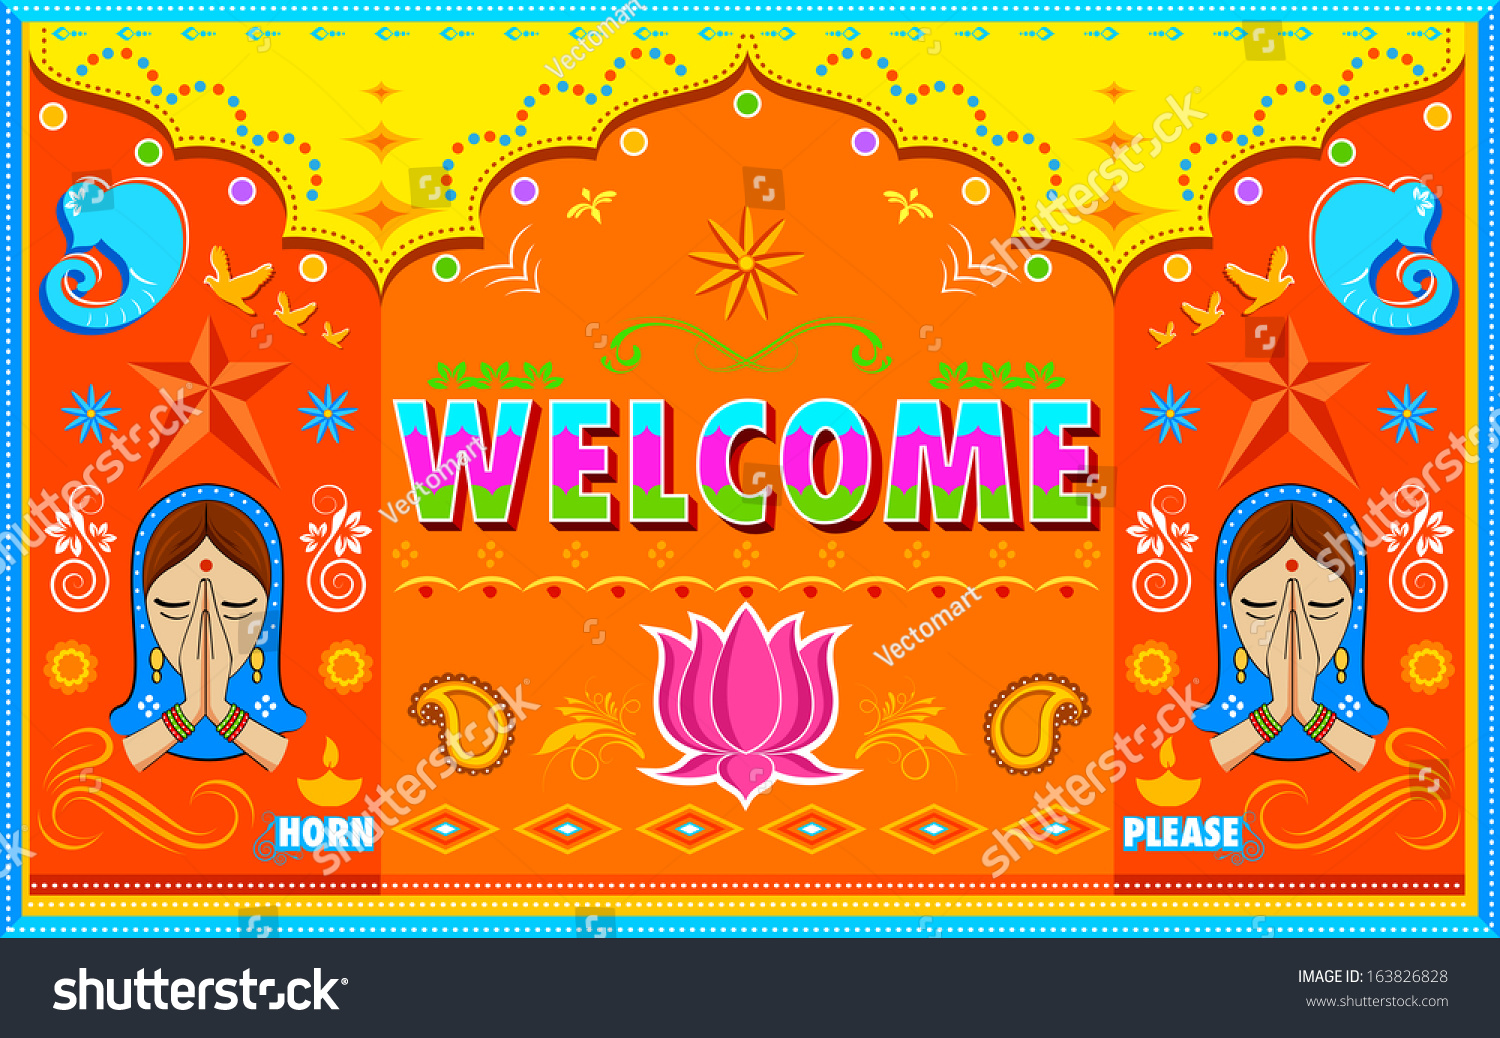 Illustration Welcome Background Indian Truck Paint Stock ...